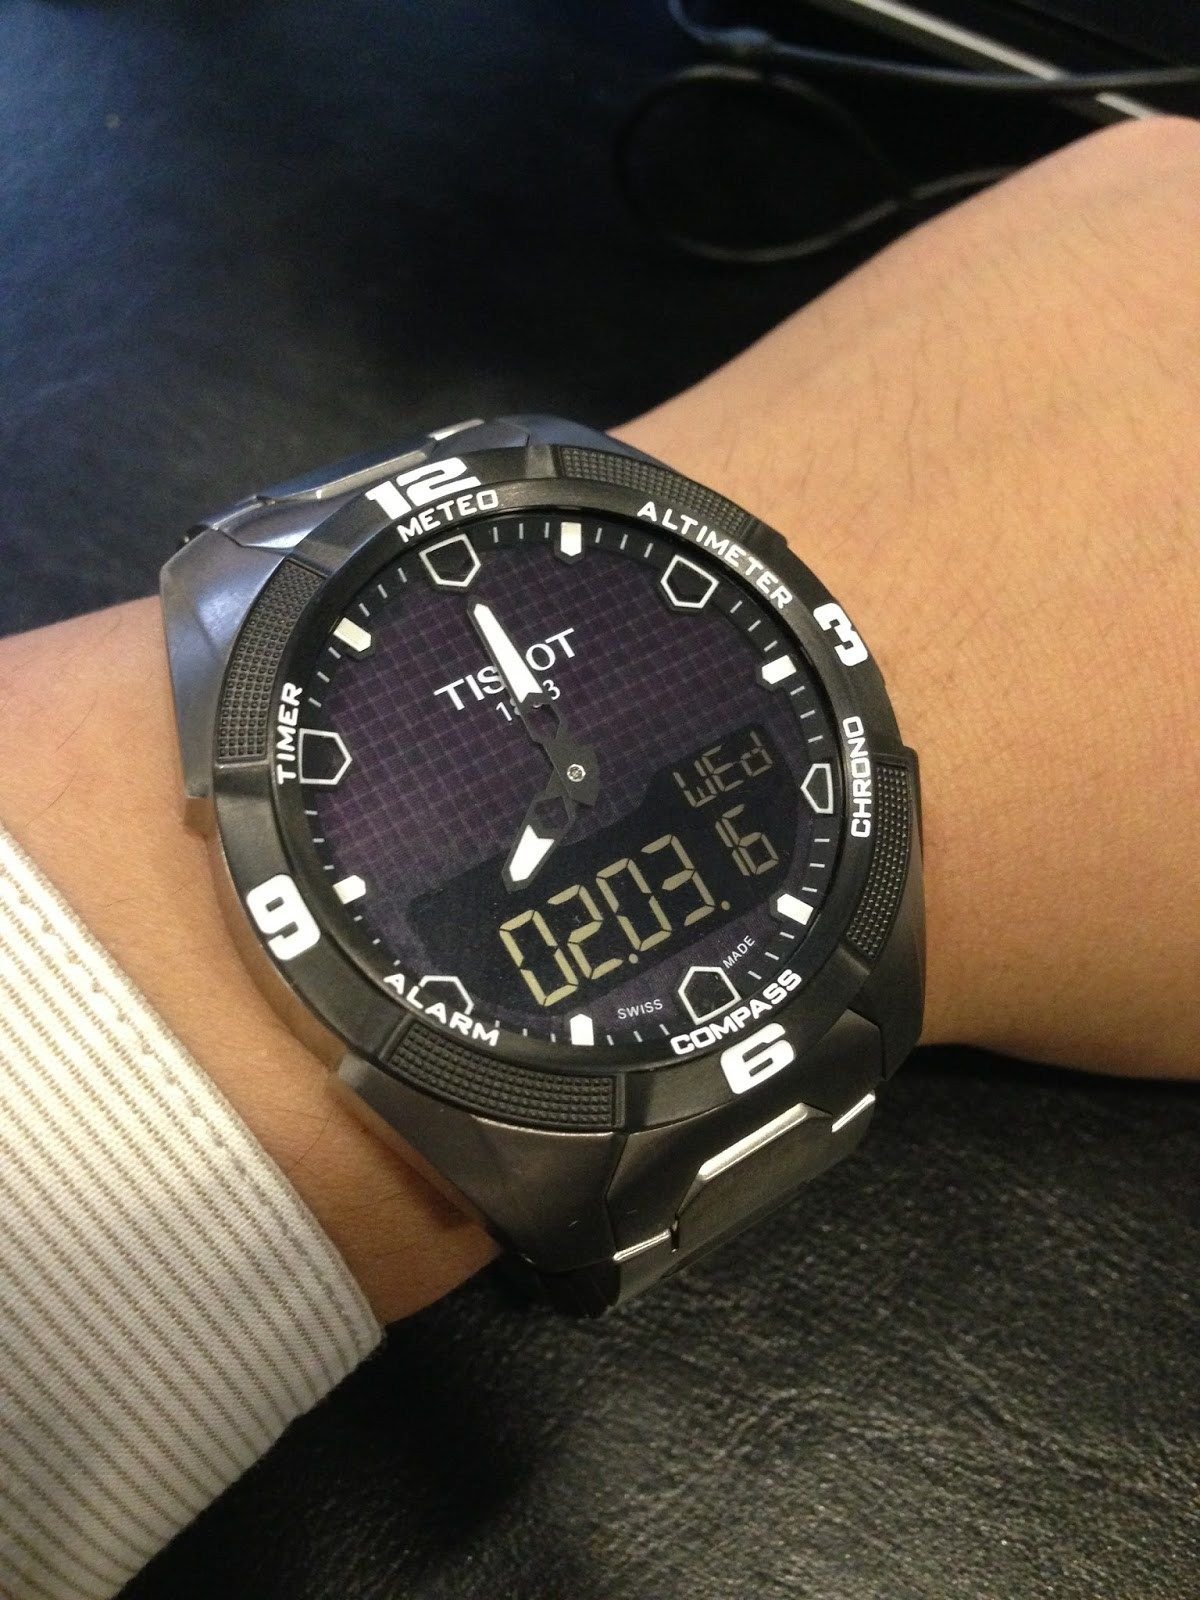 e4f6c954f94 A+Fornight+Review +2+Weeks+With+The+Tissot+T-Touch+Expert +Solar+Titanium+T091.420.44.051.00+Watch